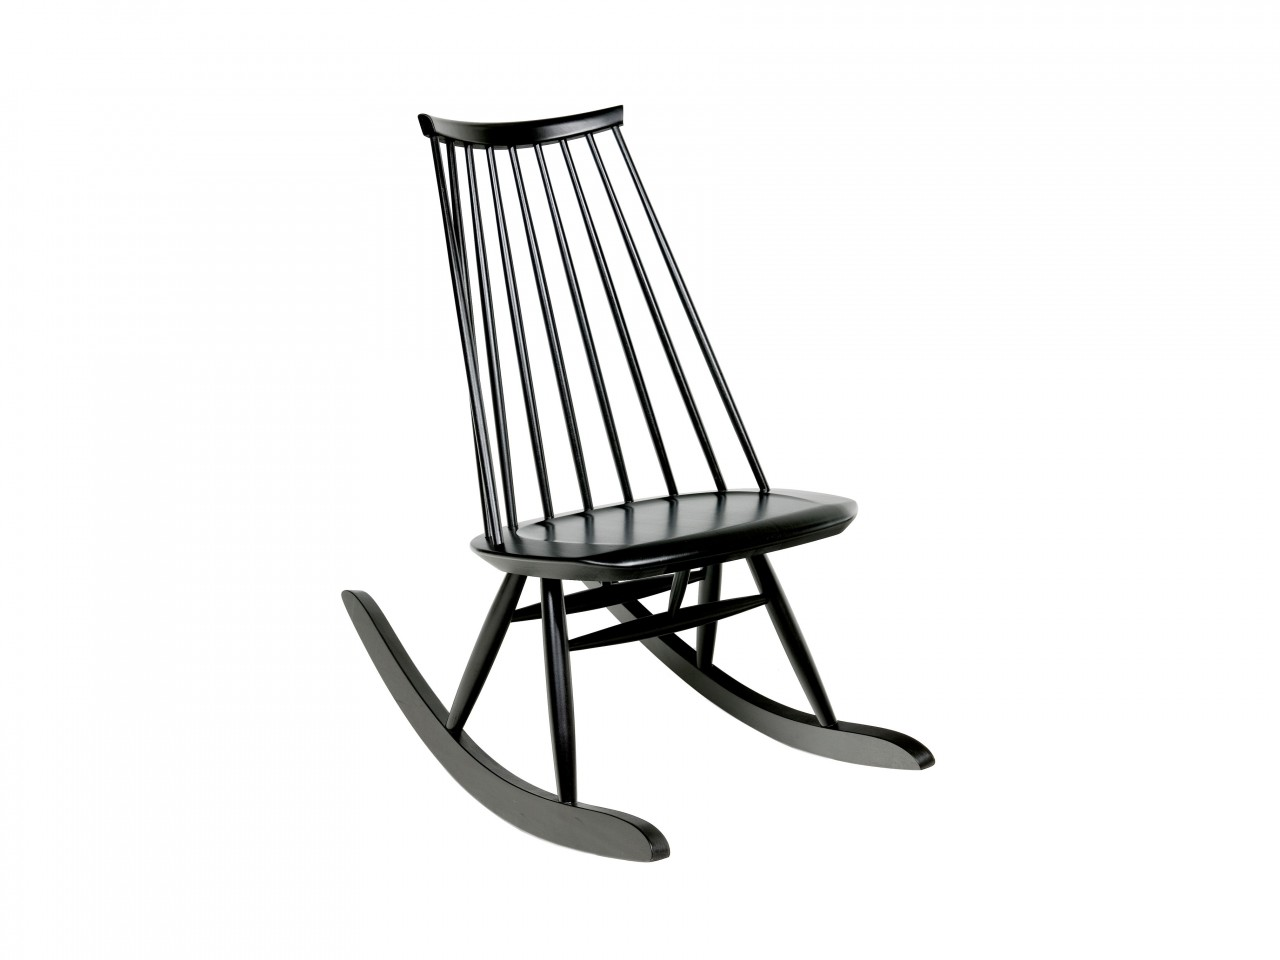 1280x960 The One Mademoiselle Rocking Chair, Artek. Designed By Ilmari